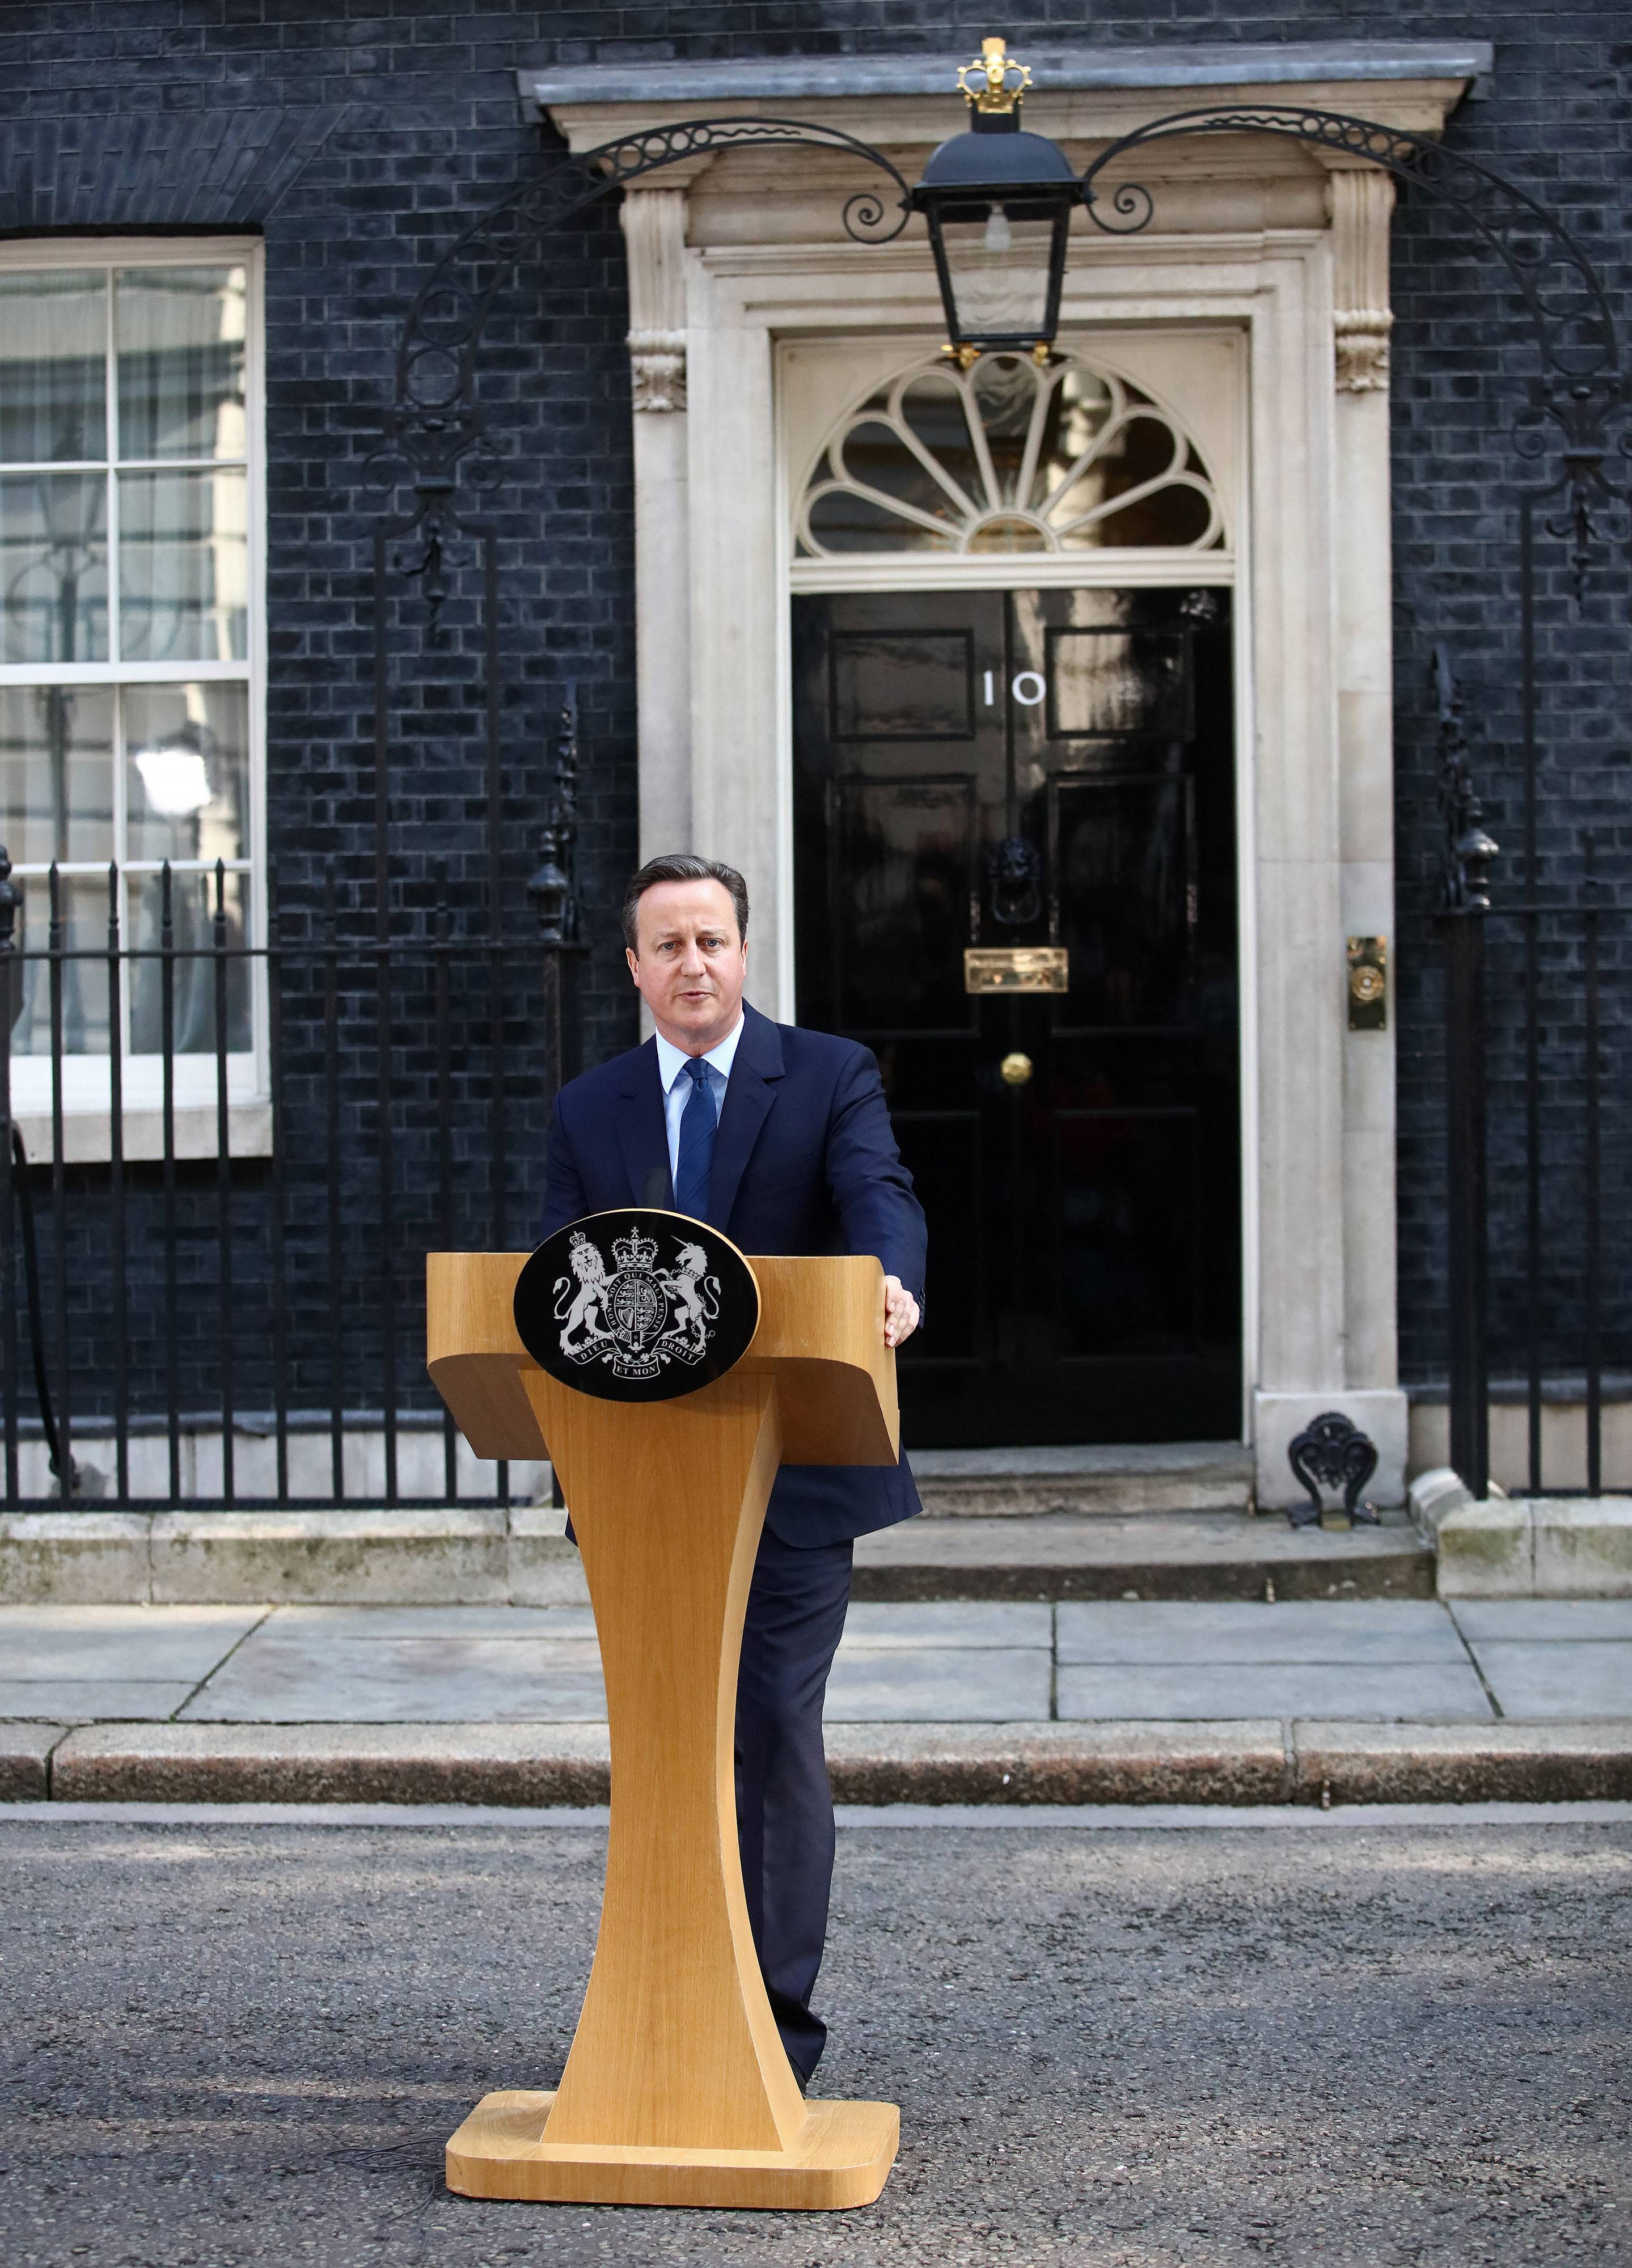 David Cameron, U.K. prime minister and leader of the Conservative Party, makes his resignation speech Friday.